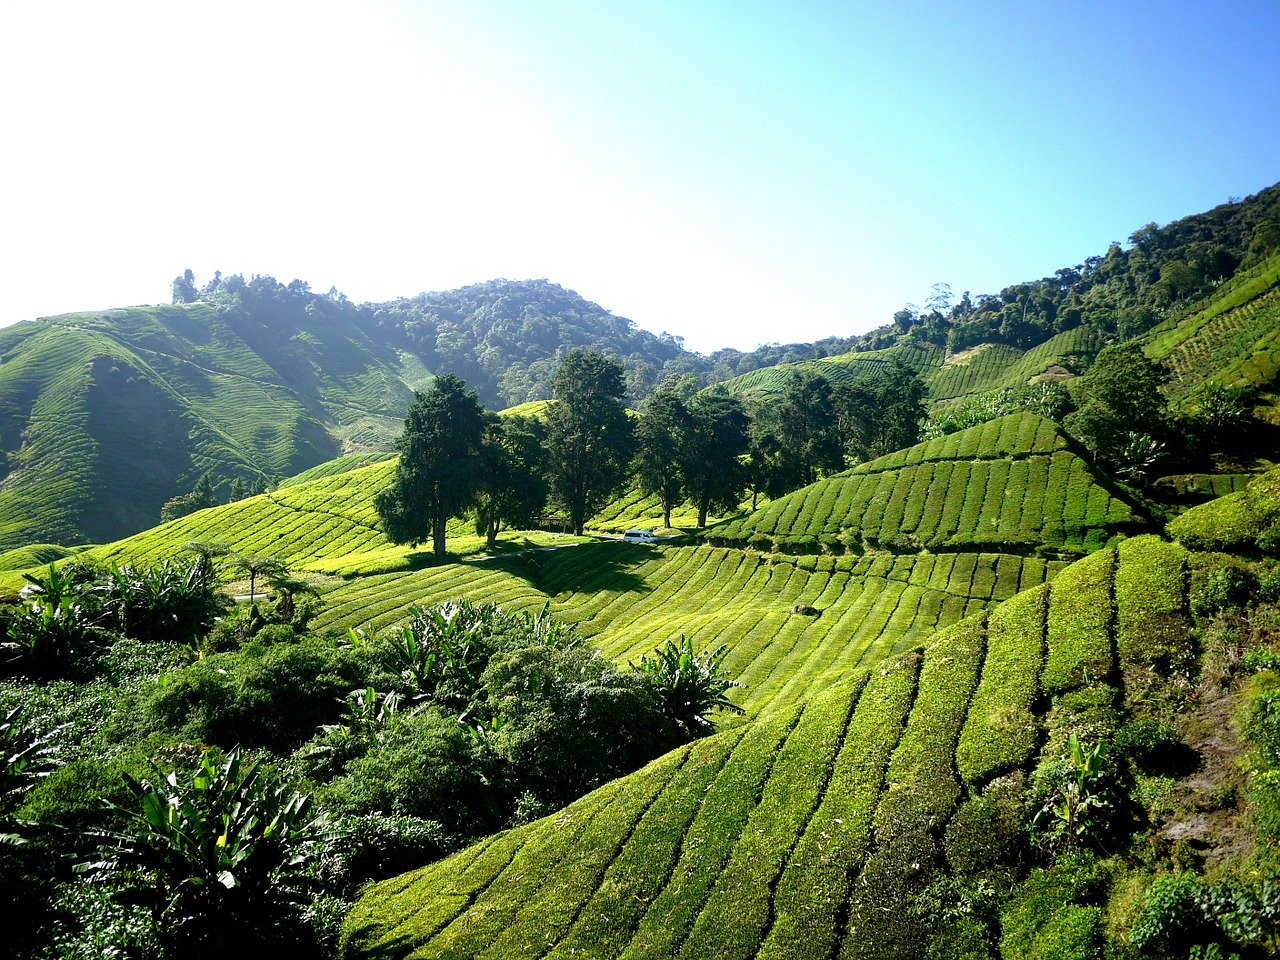 Cameron Highlands - Best Places to Visit in Malaysia in 3 Days